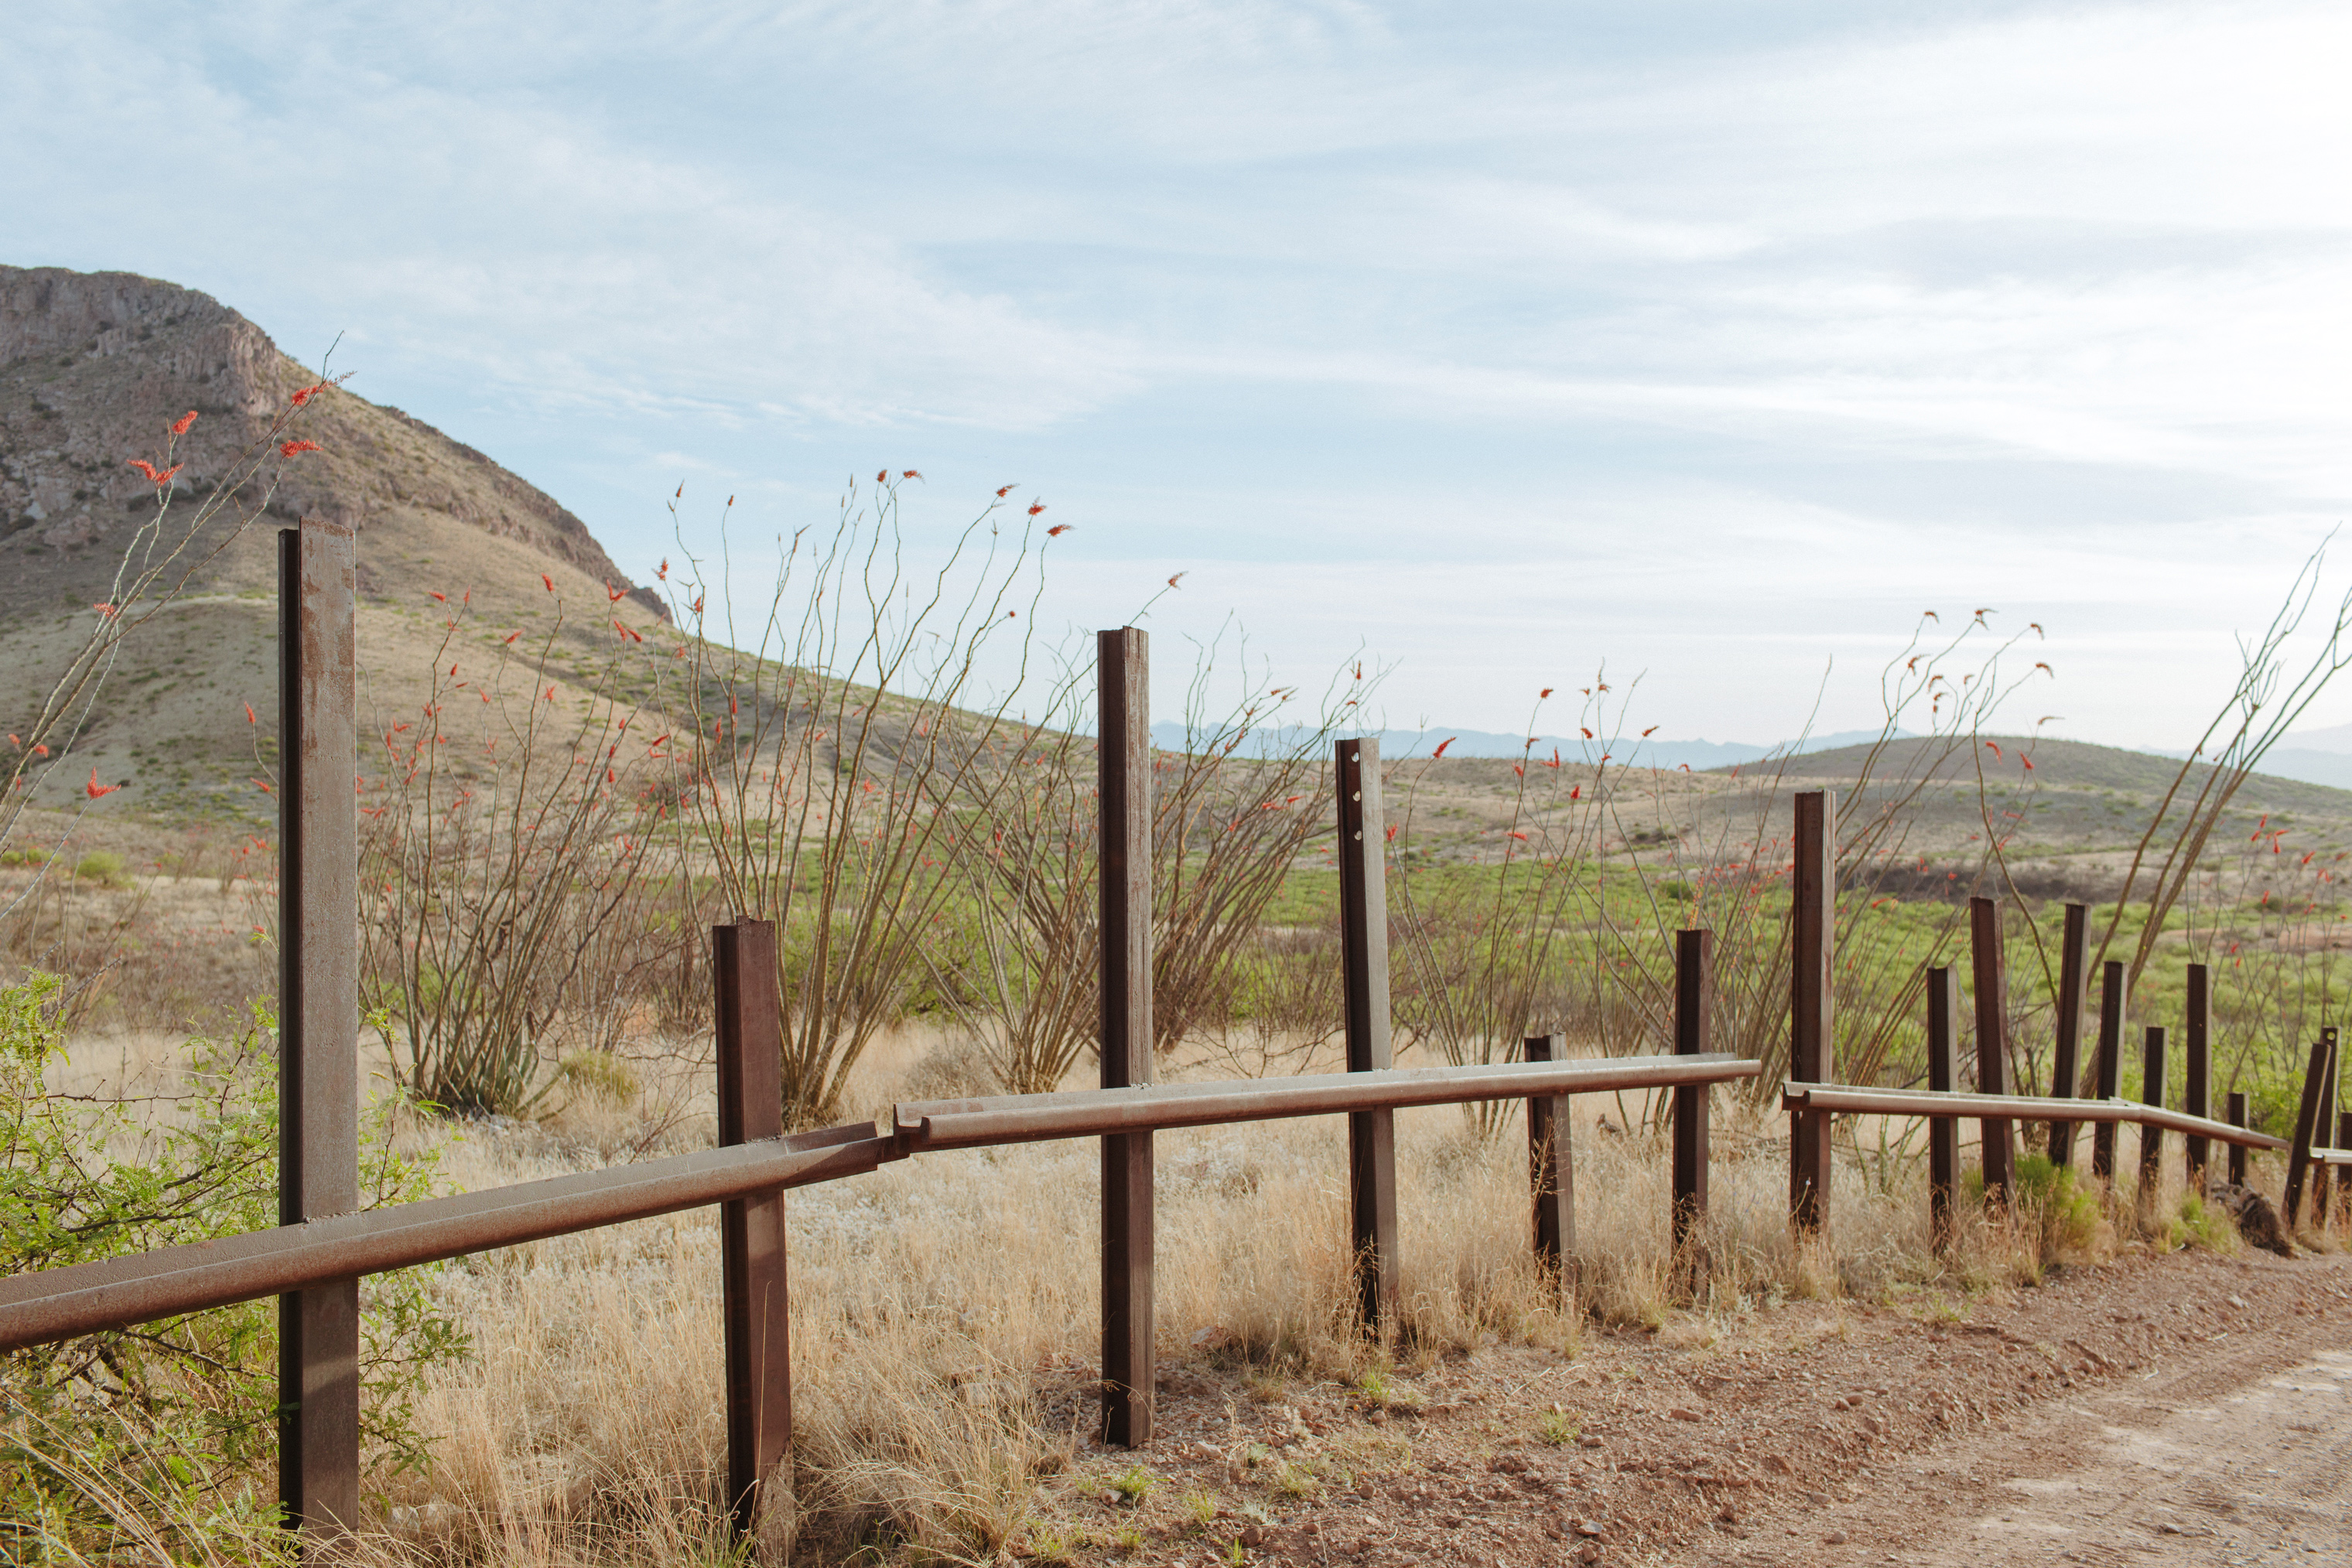 Welded old railroad ties along the border east of Douglas, Ariz.